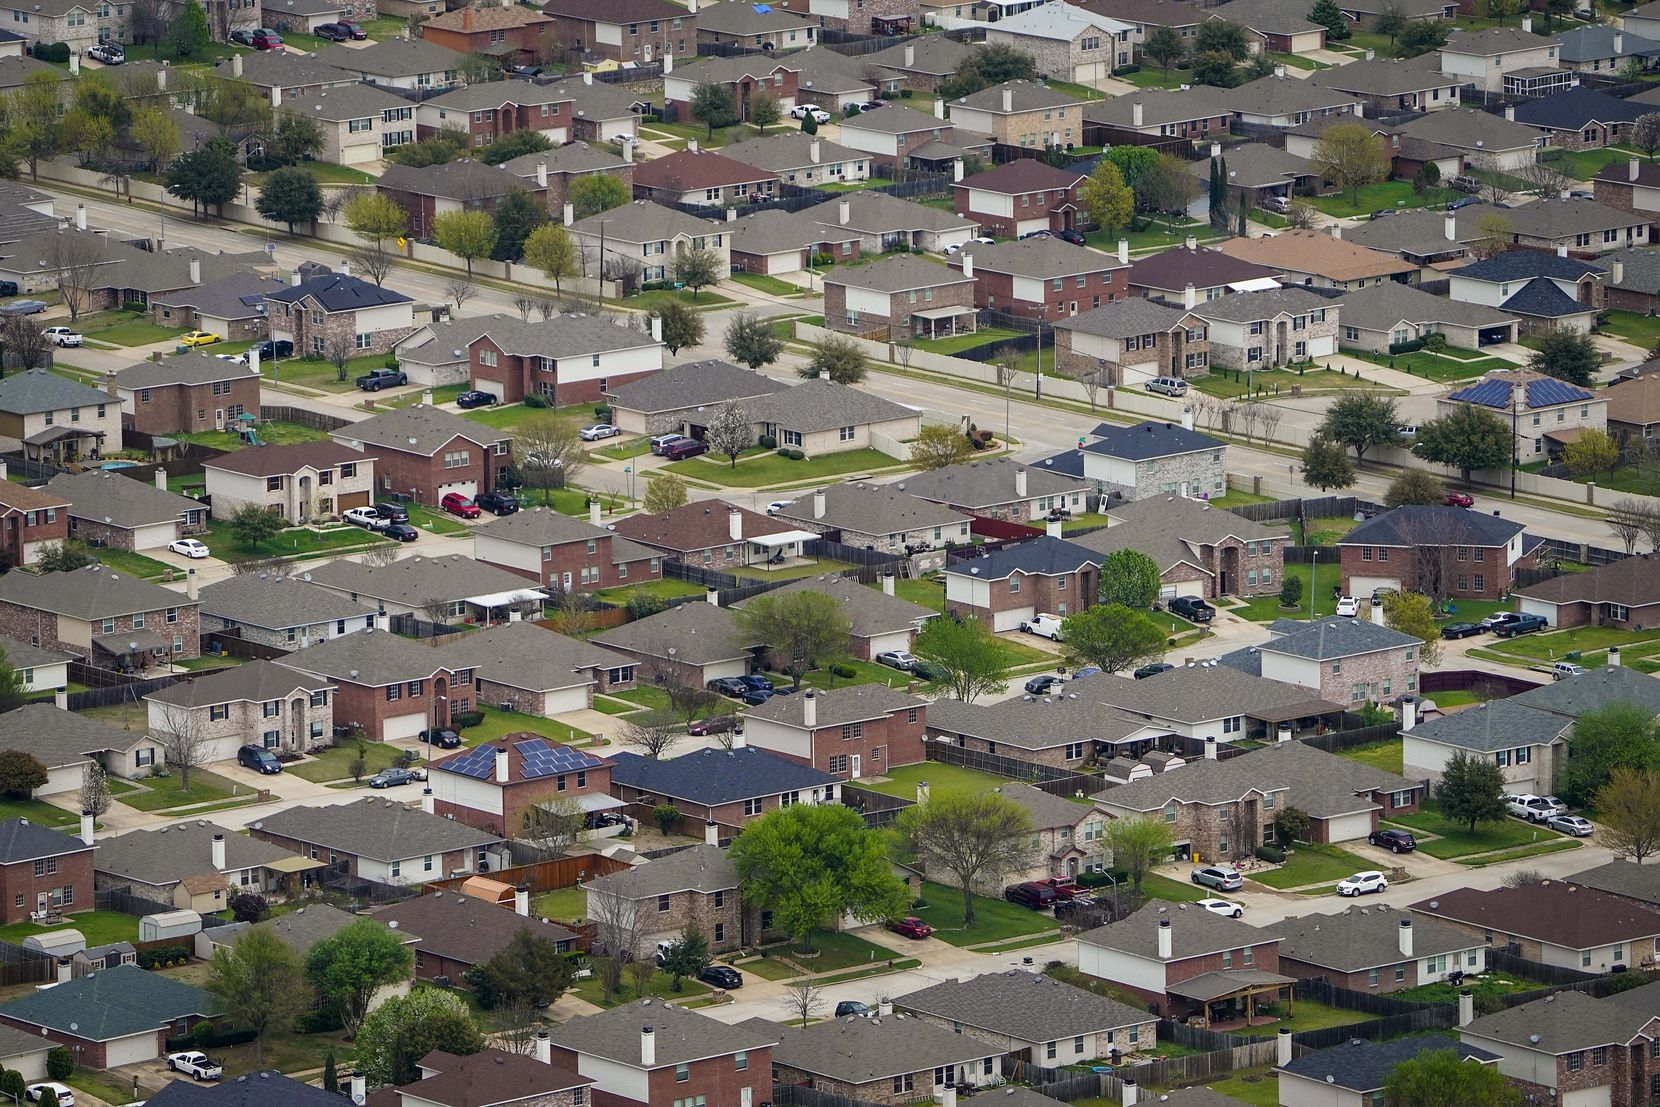 A March 2020 aerial view of homes in Grand Prairie.